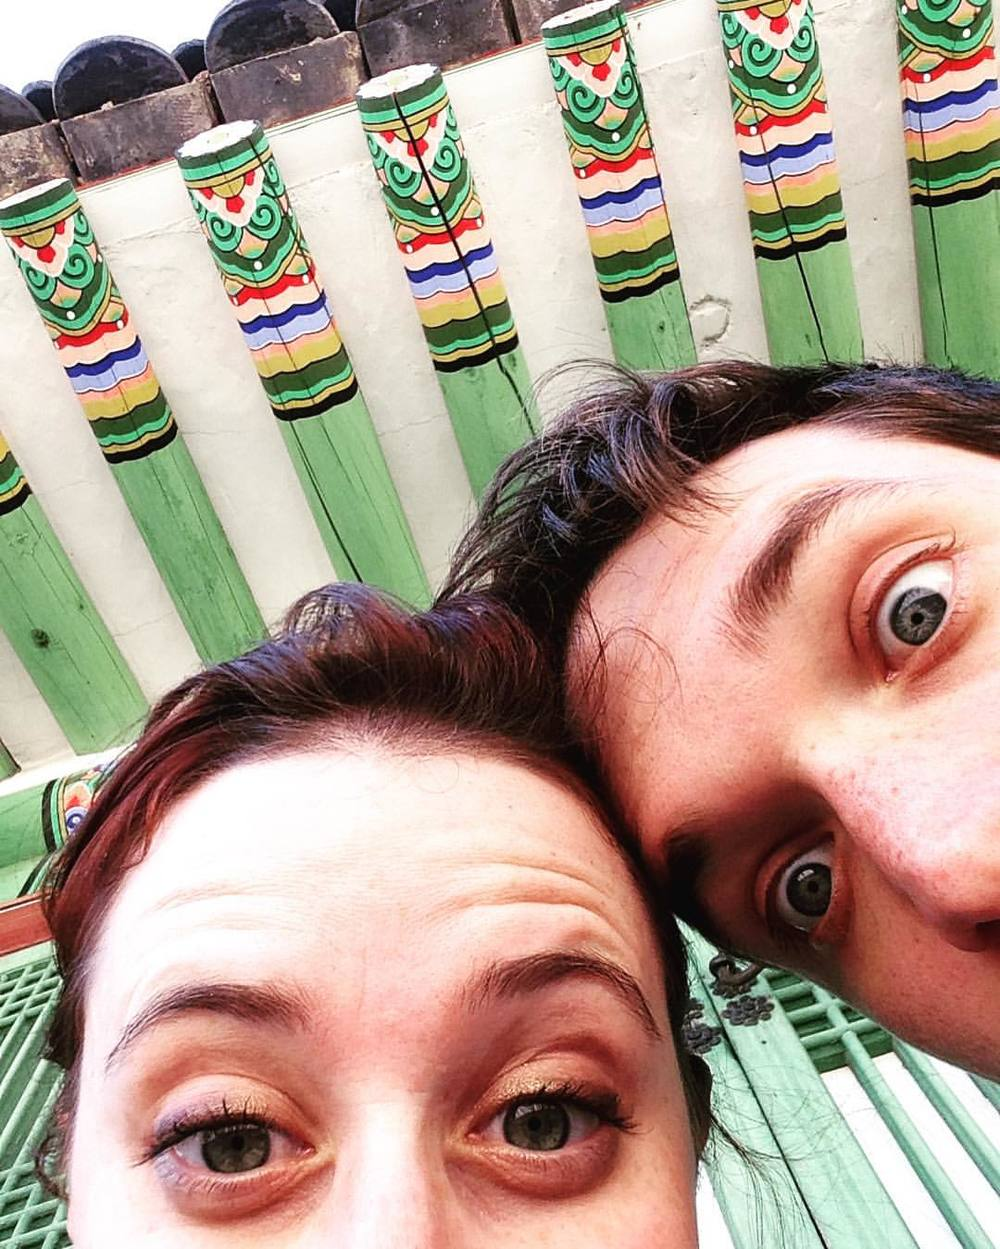 """We love pattern!"" My husband and I at the Gyeongbokgung Palace enjoying the incredibly detailed and colorful ceilings."